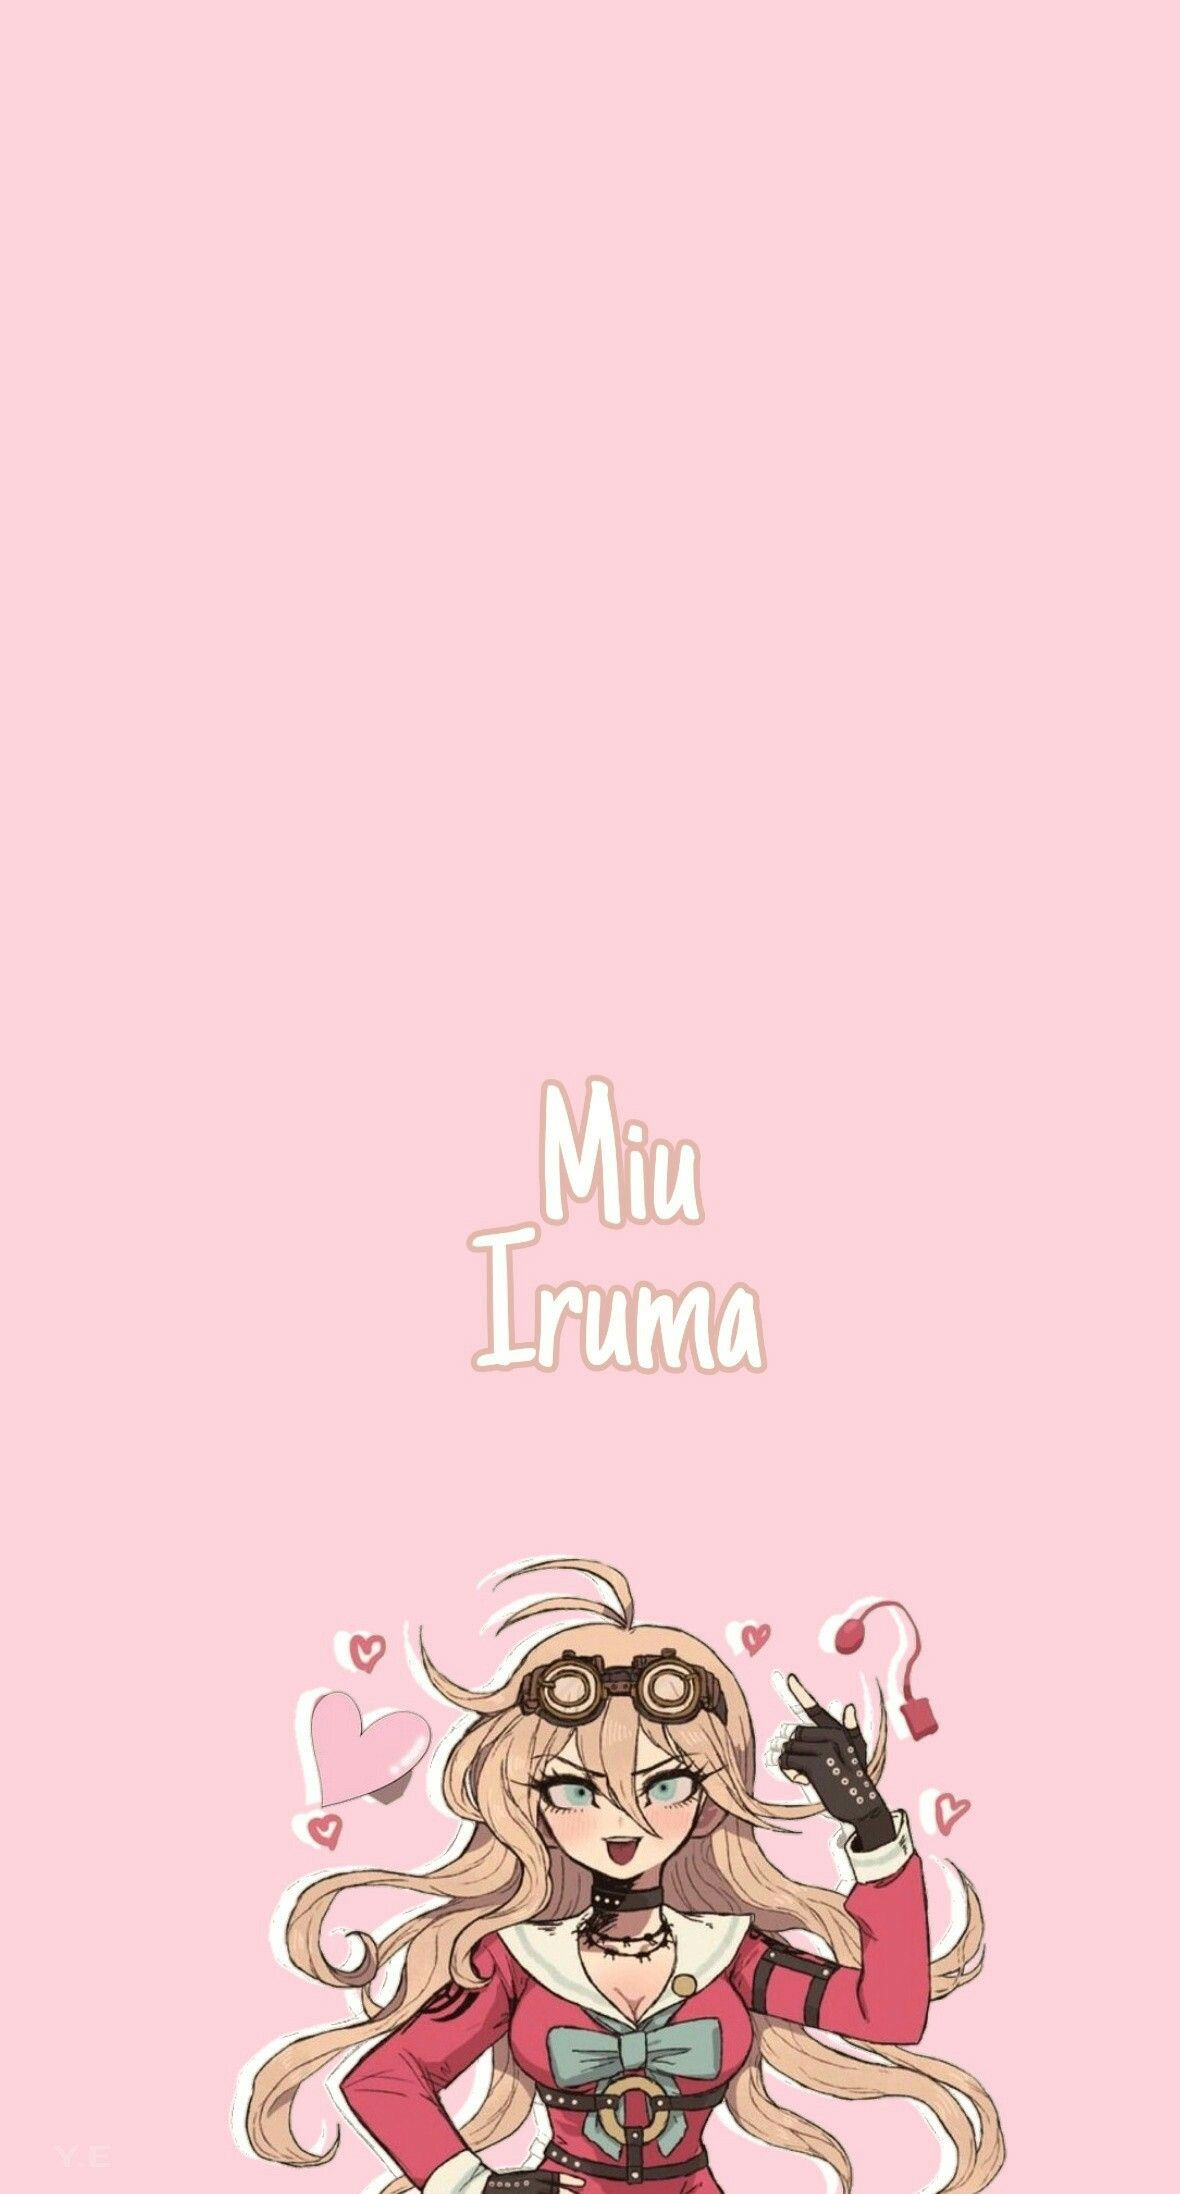 Miu Iruma Wallpaper Anime Wallpaper Aesthetic Anime Iruma